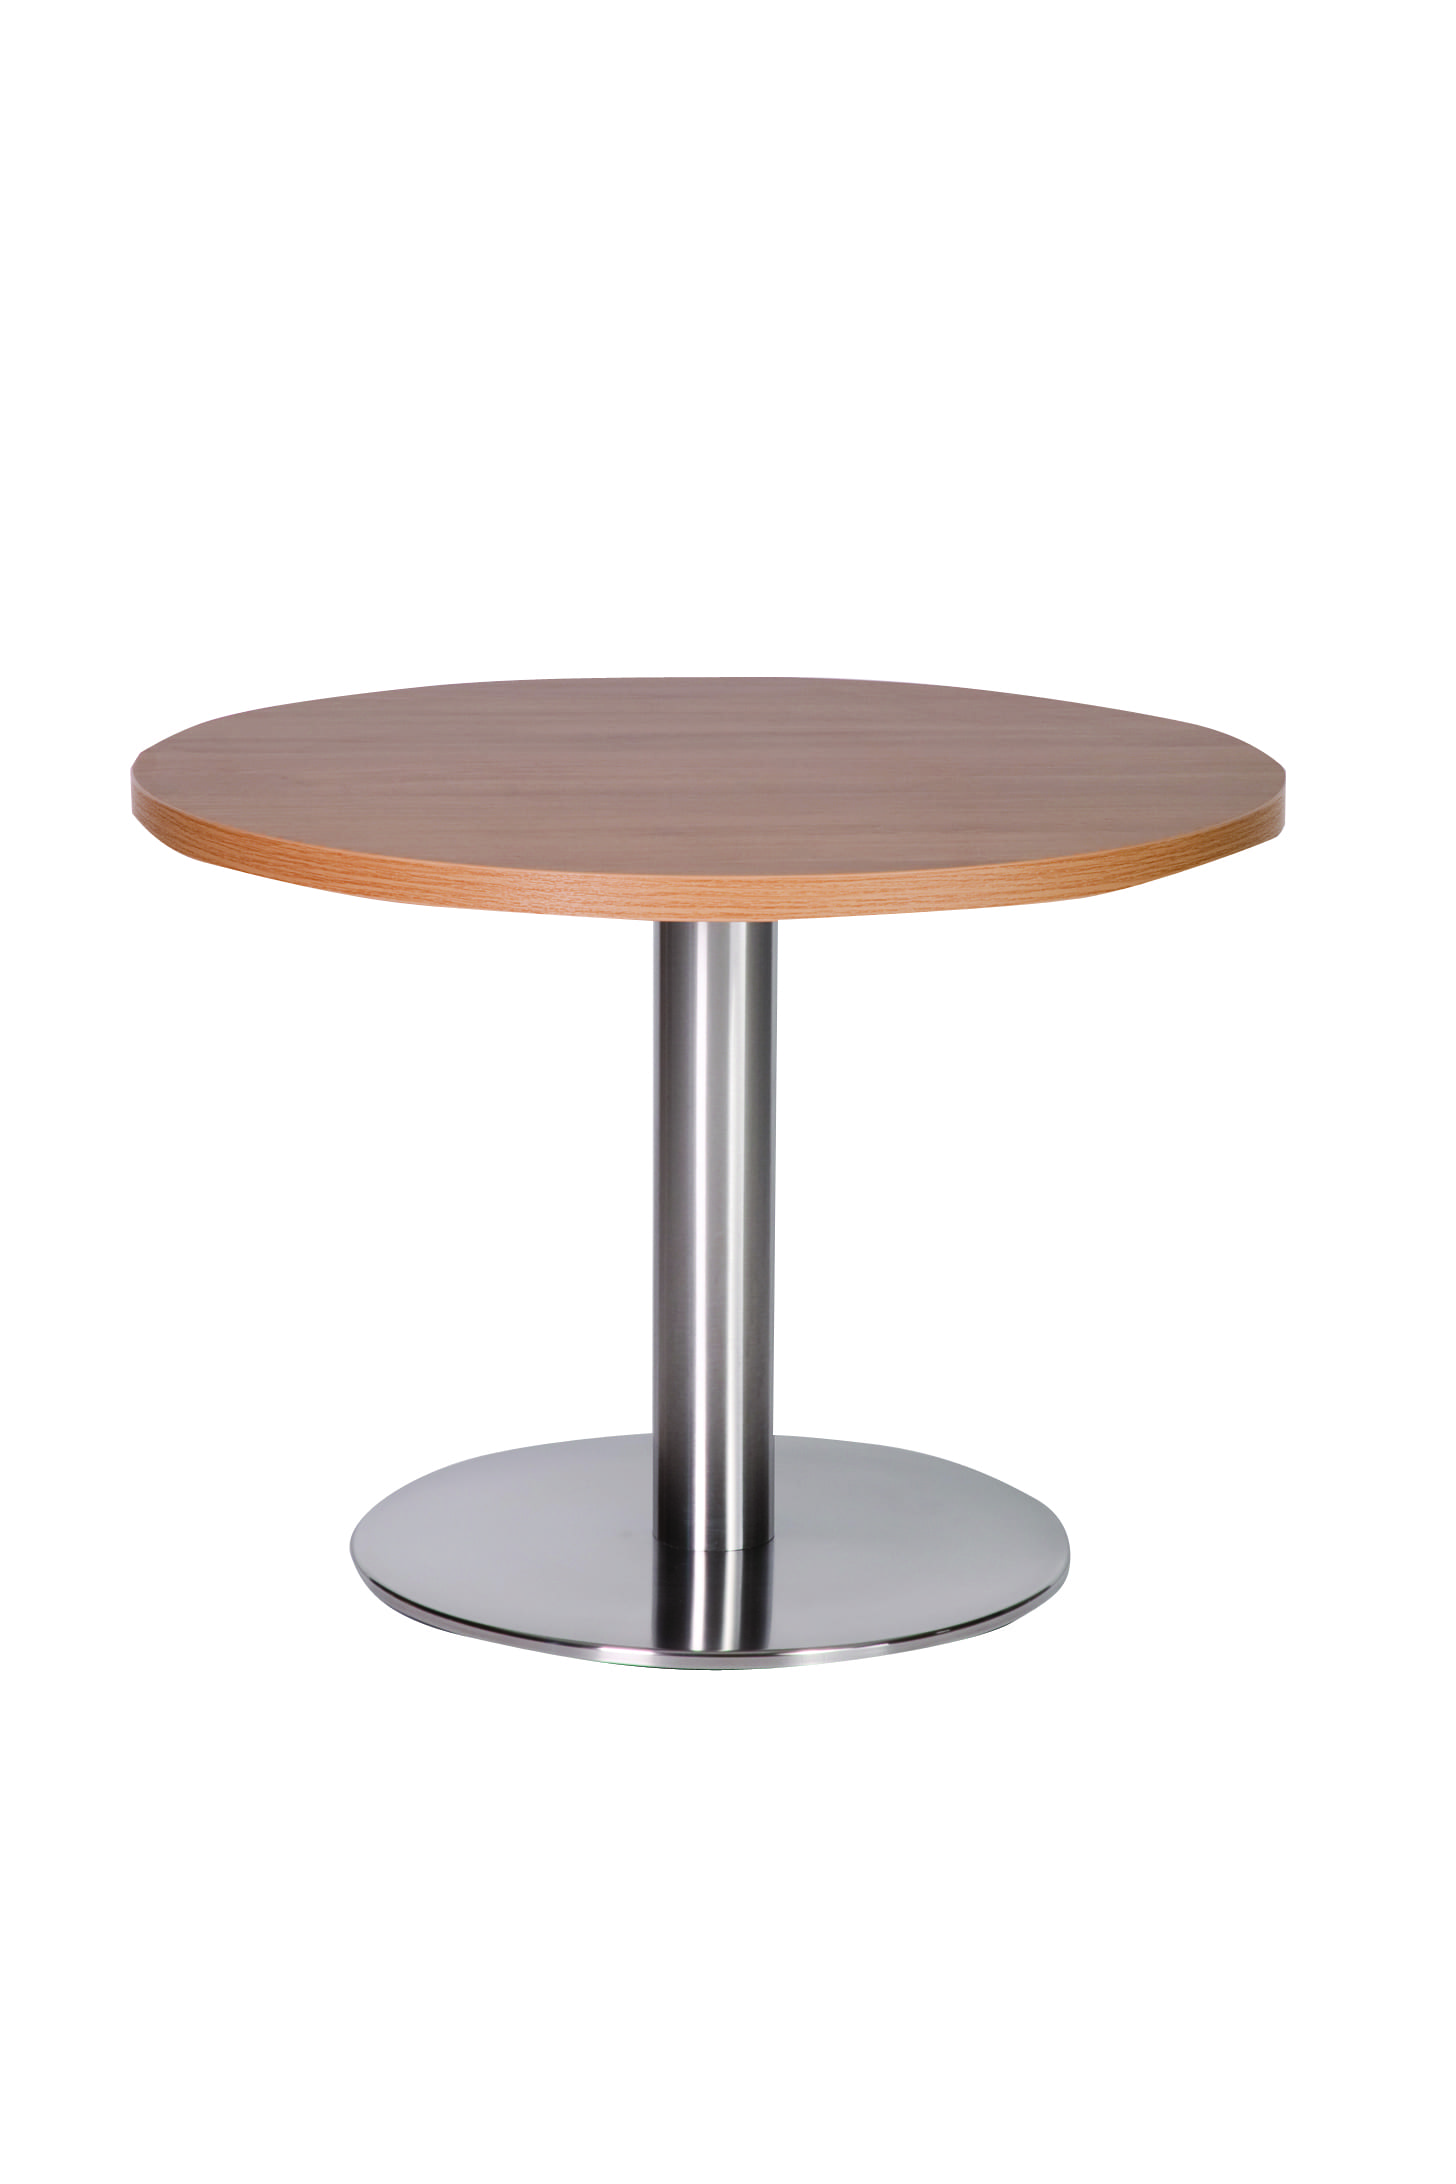 Daniella Round Coffee Table Base Round Solid Wood Tops